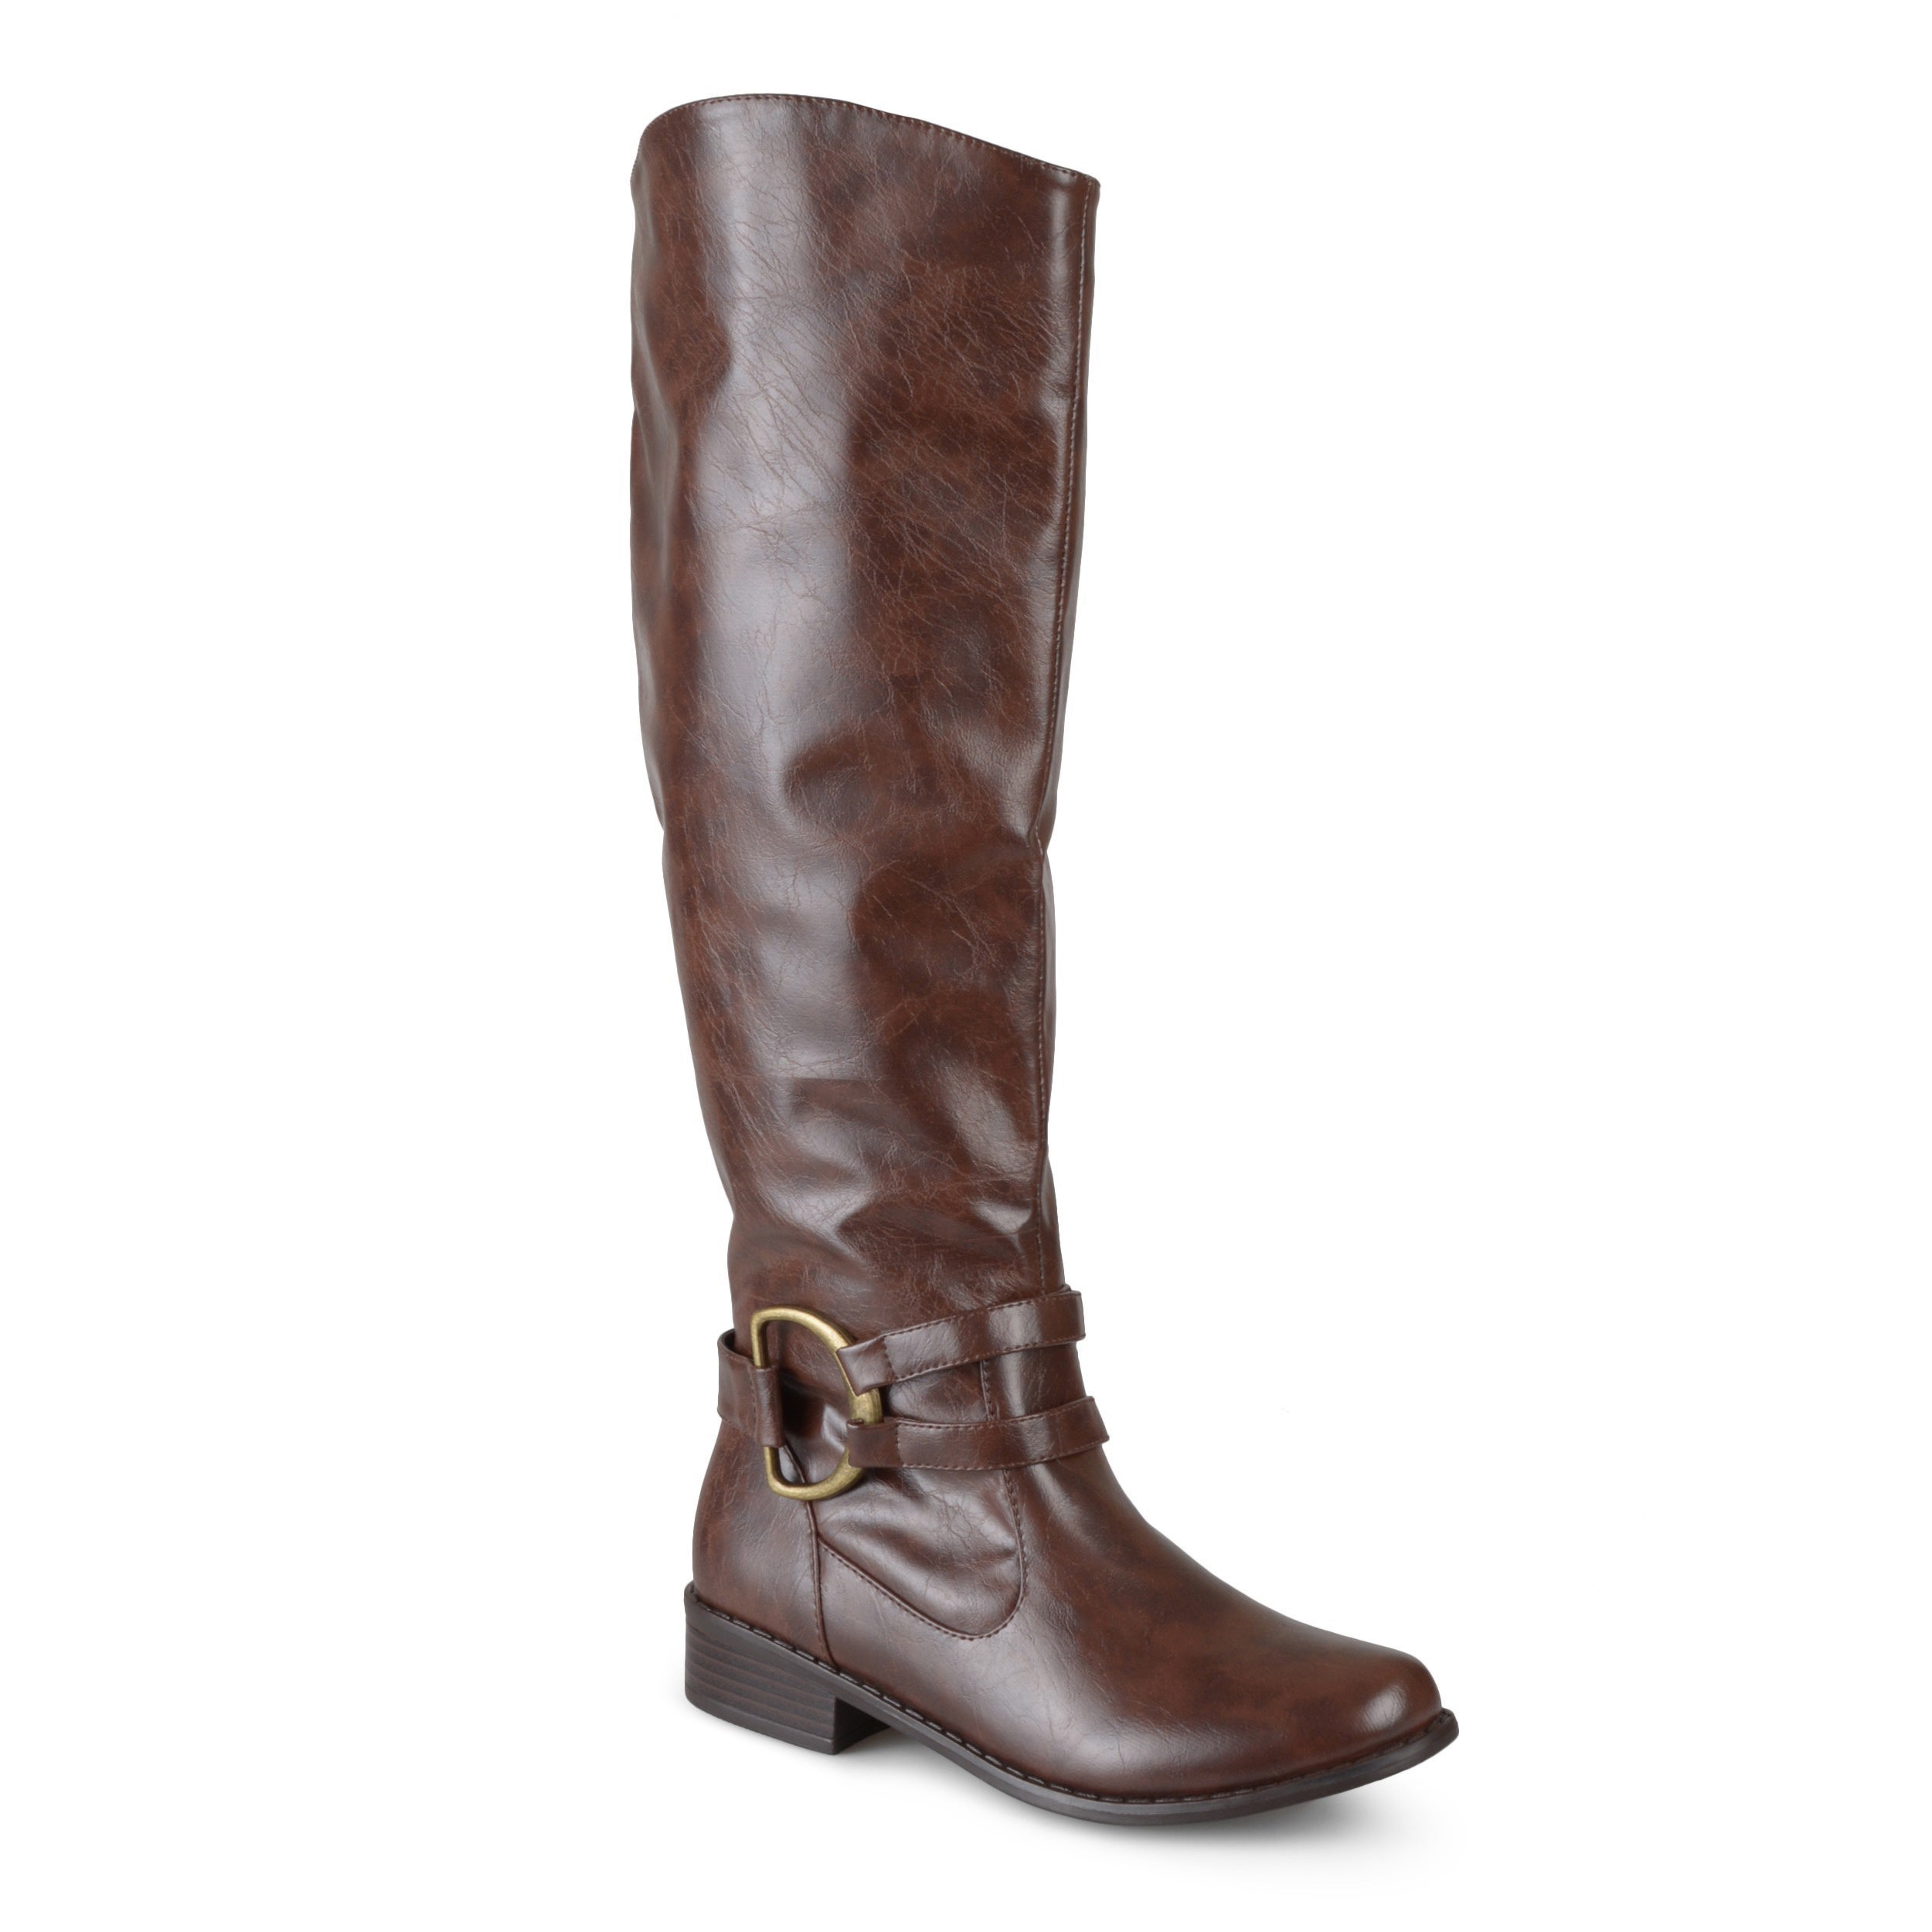 e89ae4680bfe Journee Collection Women s  Charming-01  Regular and Wide-calf Knee-high  Riding Boot